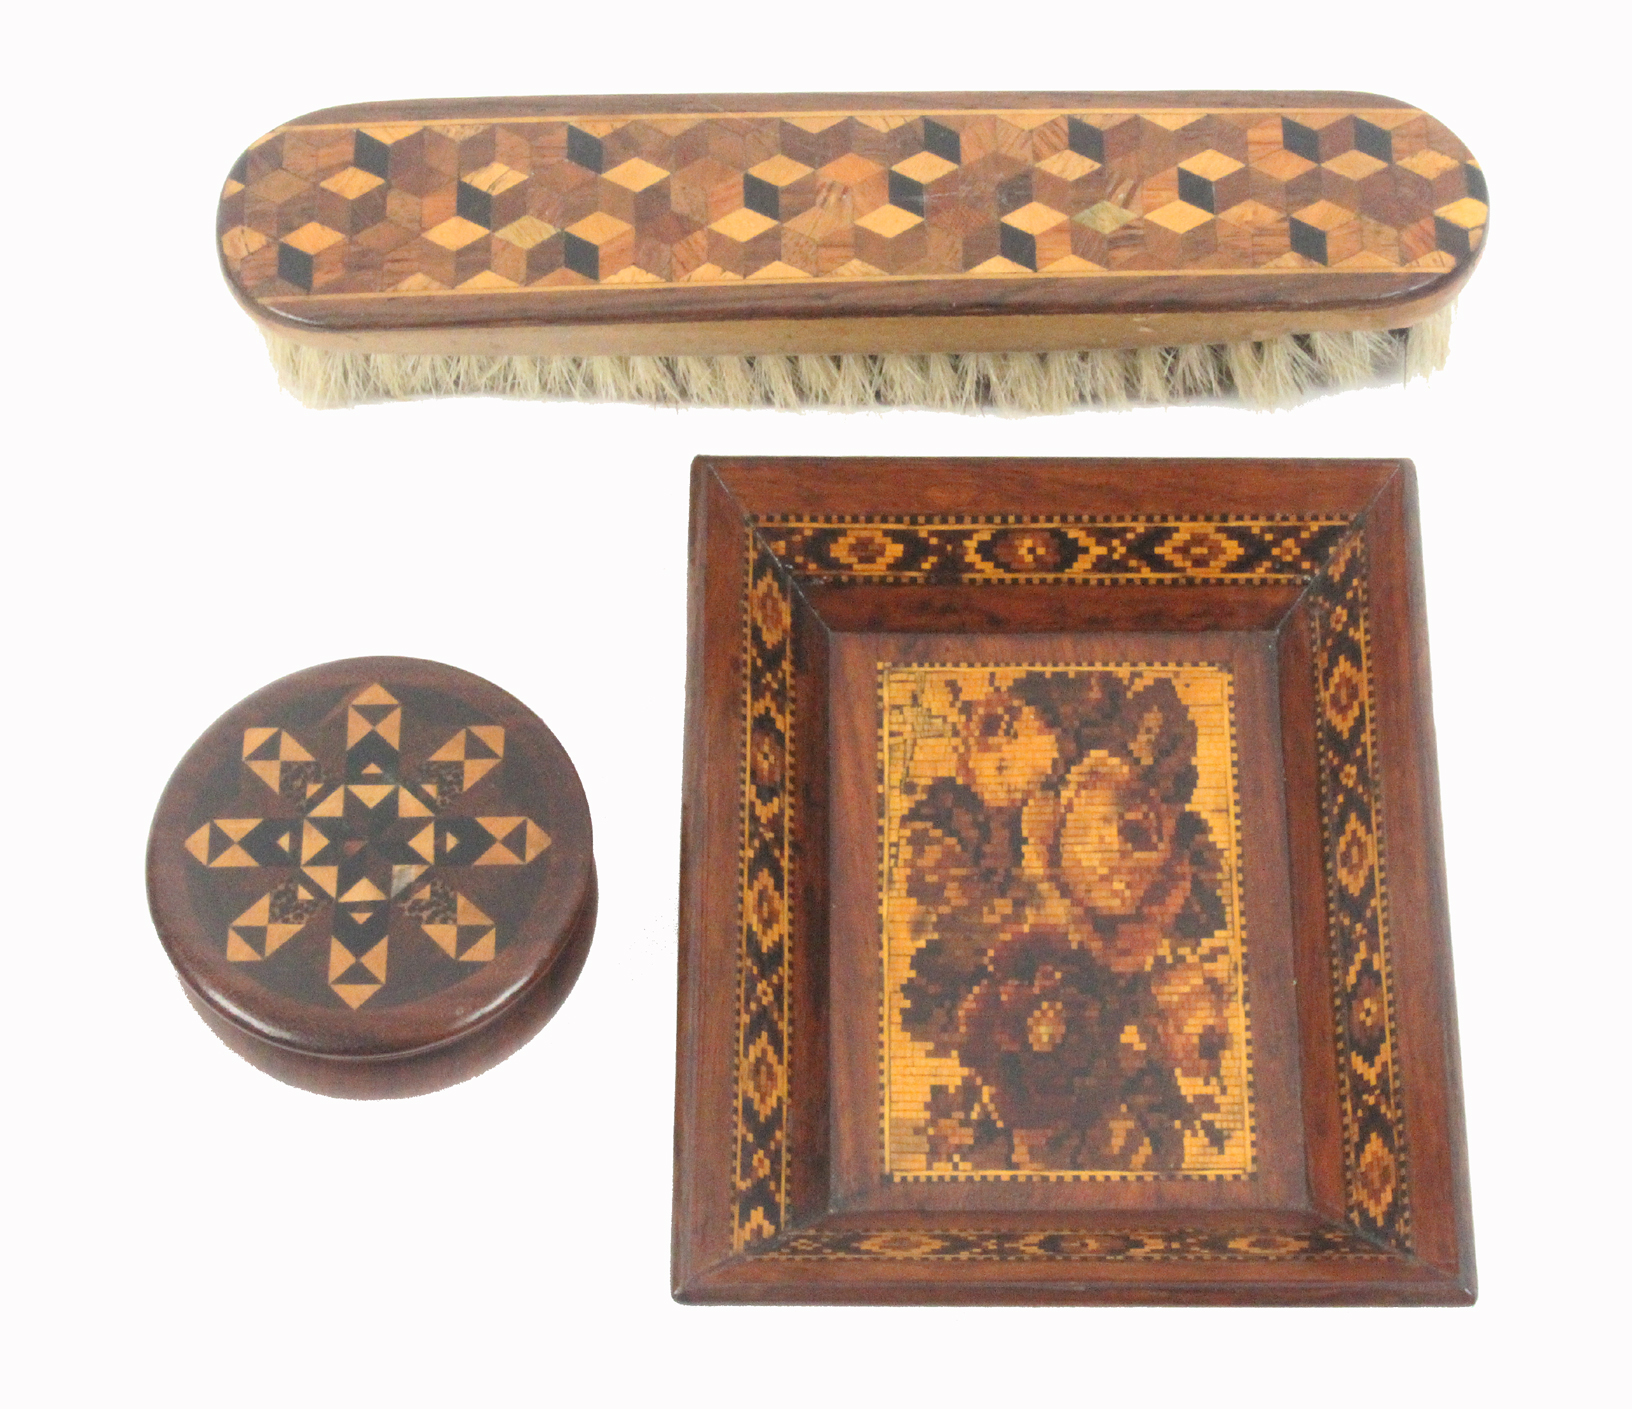 Tunbridge ware - three pieces, comprising a rectangular card tray with floral mosaic centre within a